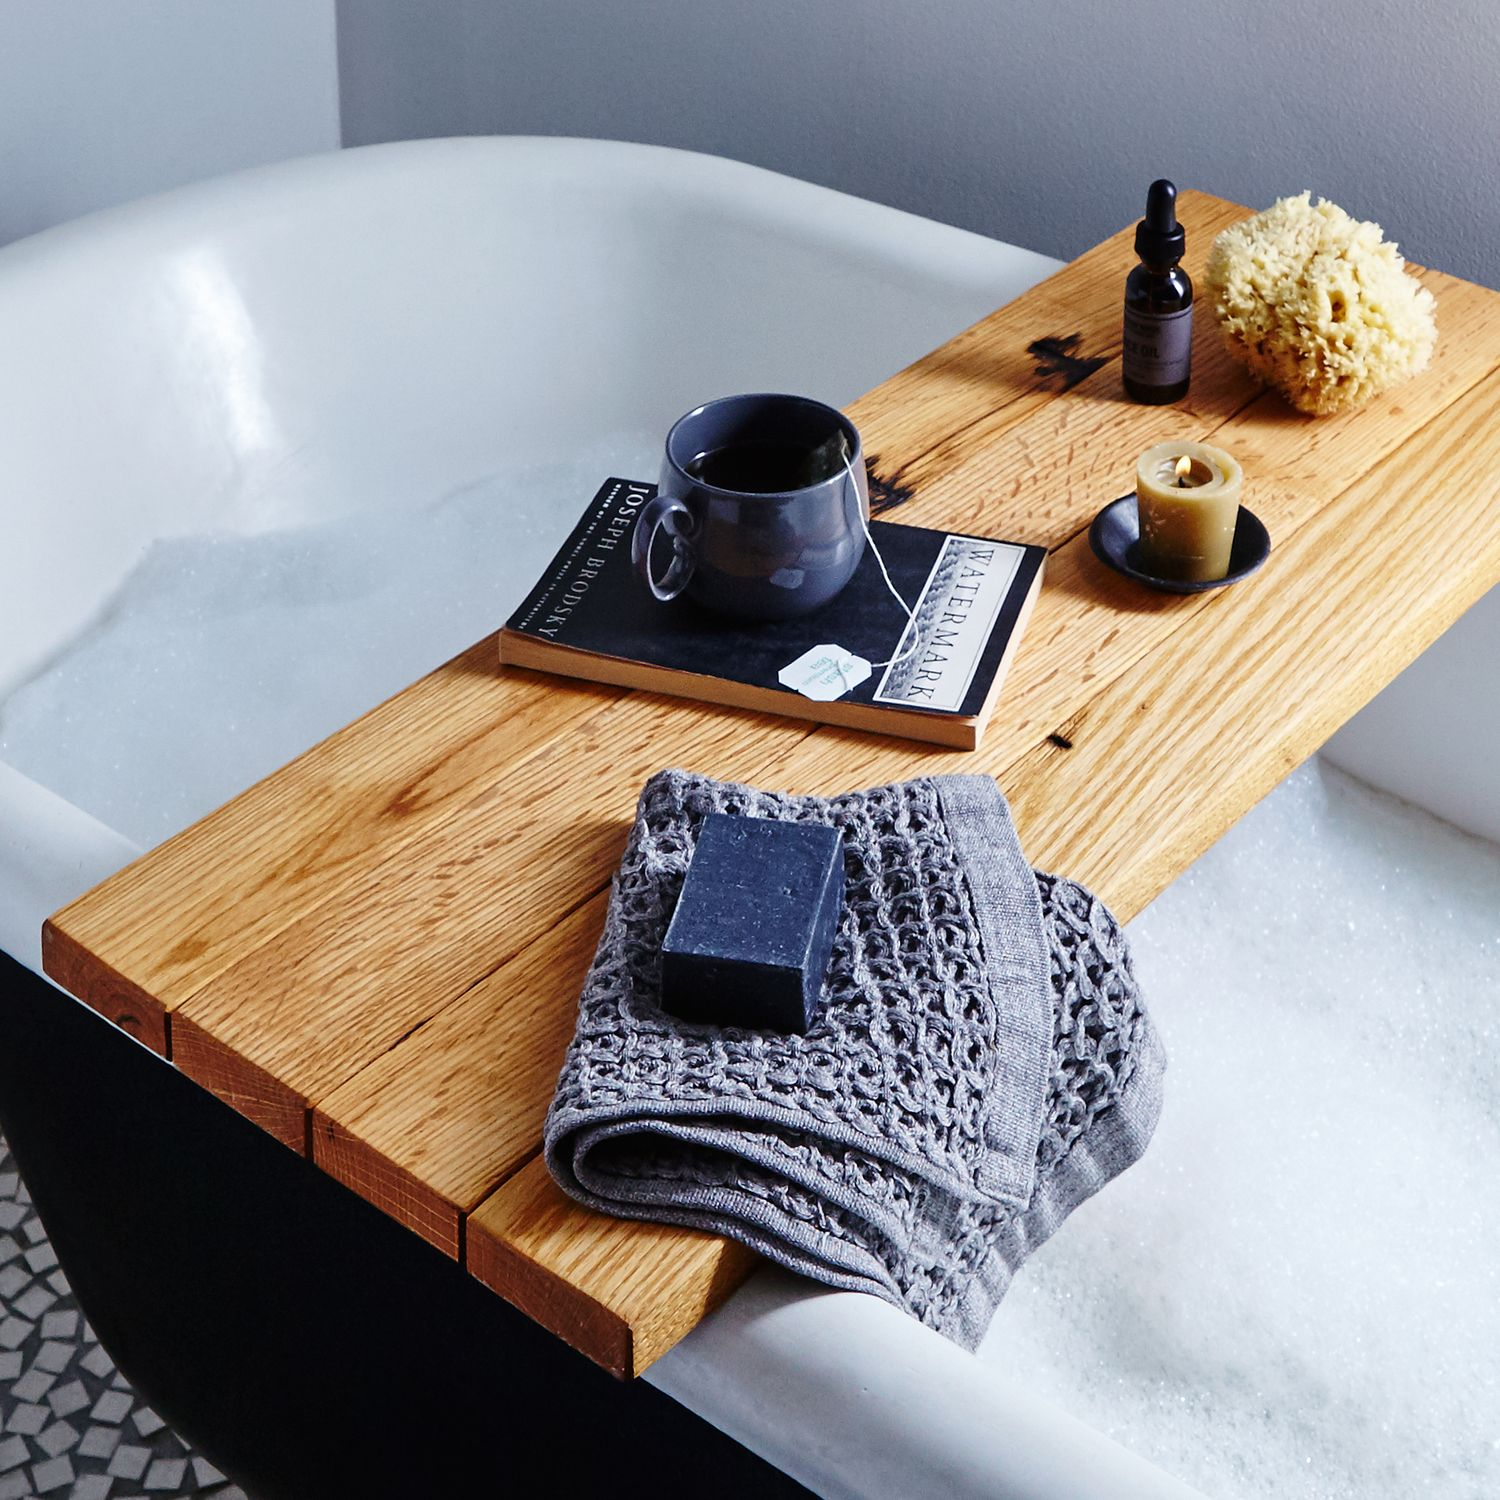 bathroom friendly this caddy l earth makes and toiletries bamboo tub other the hancock color accessories a for golden with holding natural caddie bath material